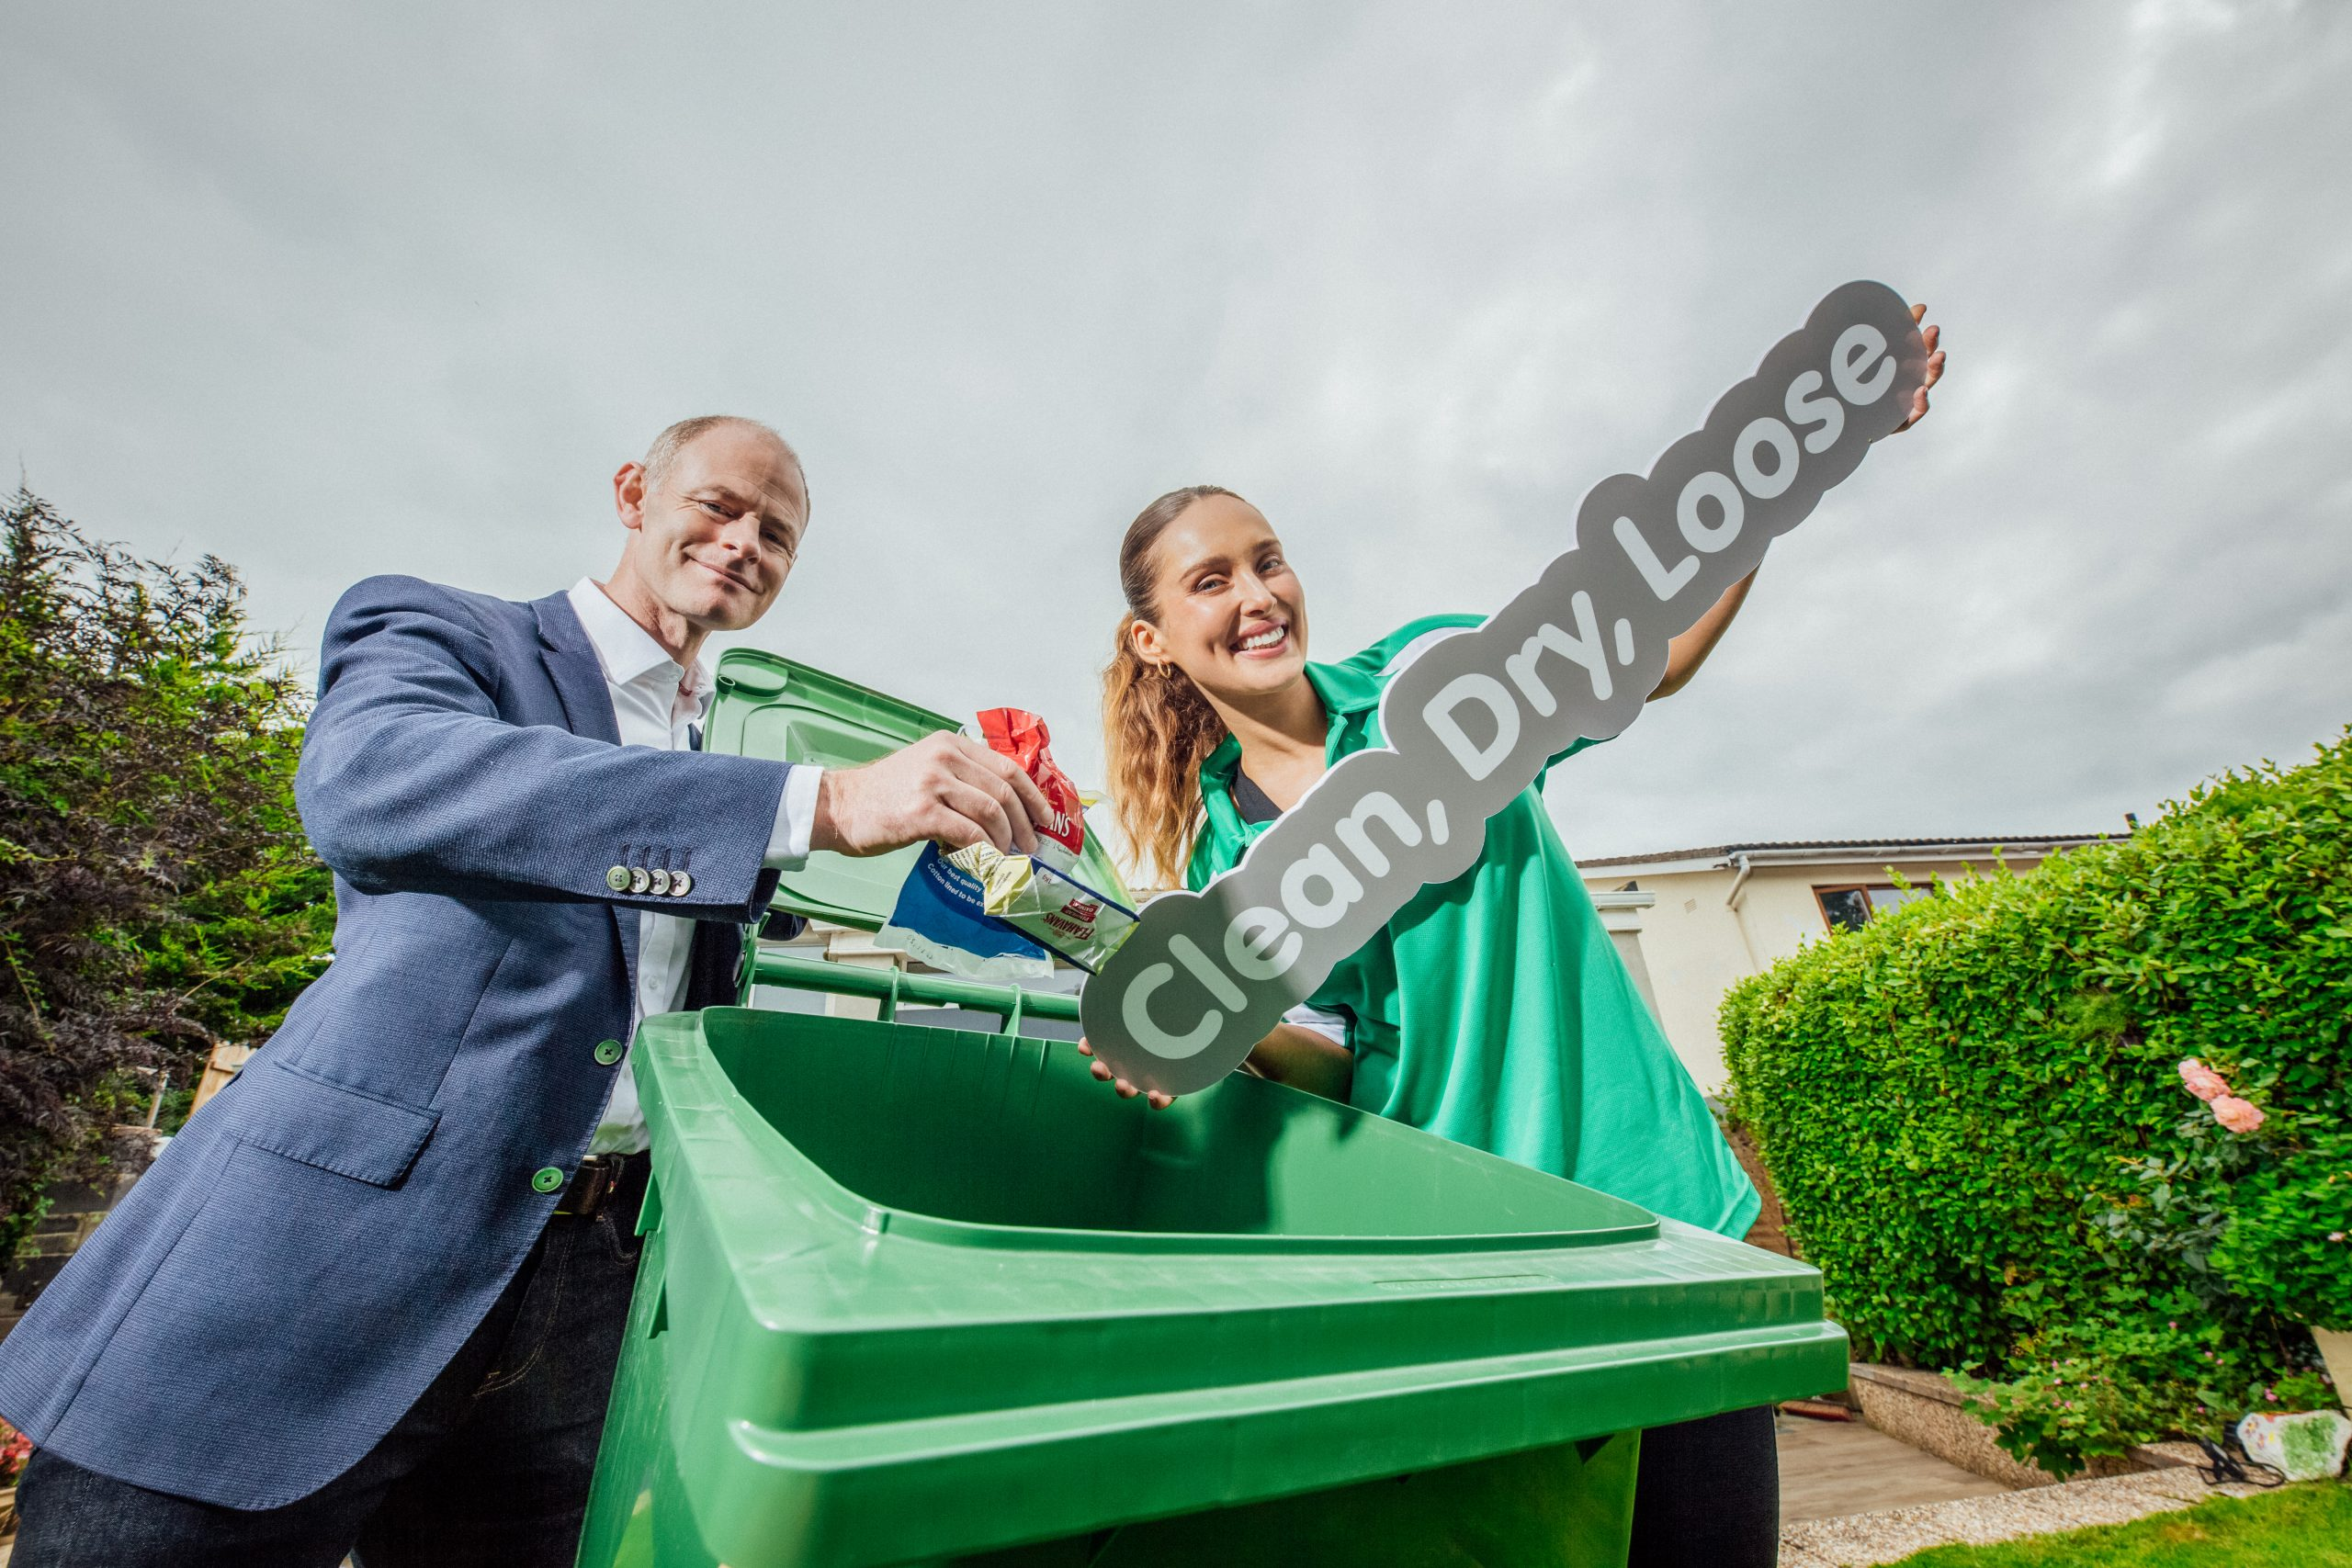 Recycling Changes announced as Soft Plastic Waste, that is clean, dry and loose, can now be placed in Irish Household Recycling Bins